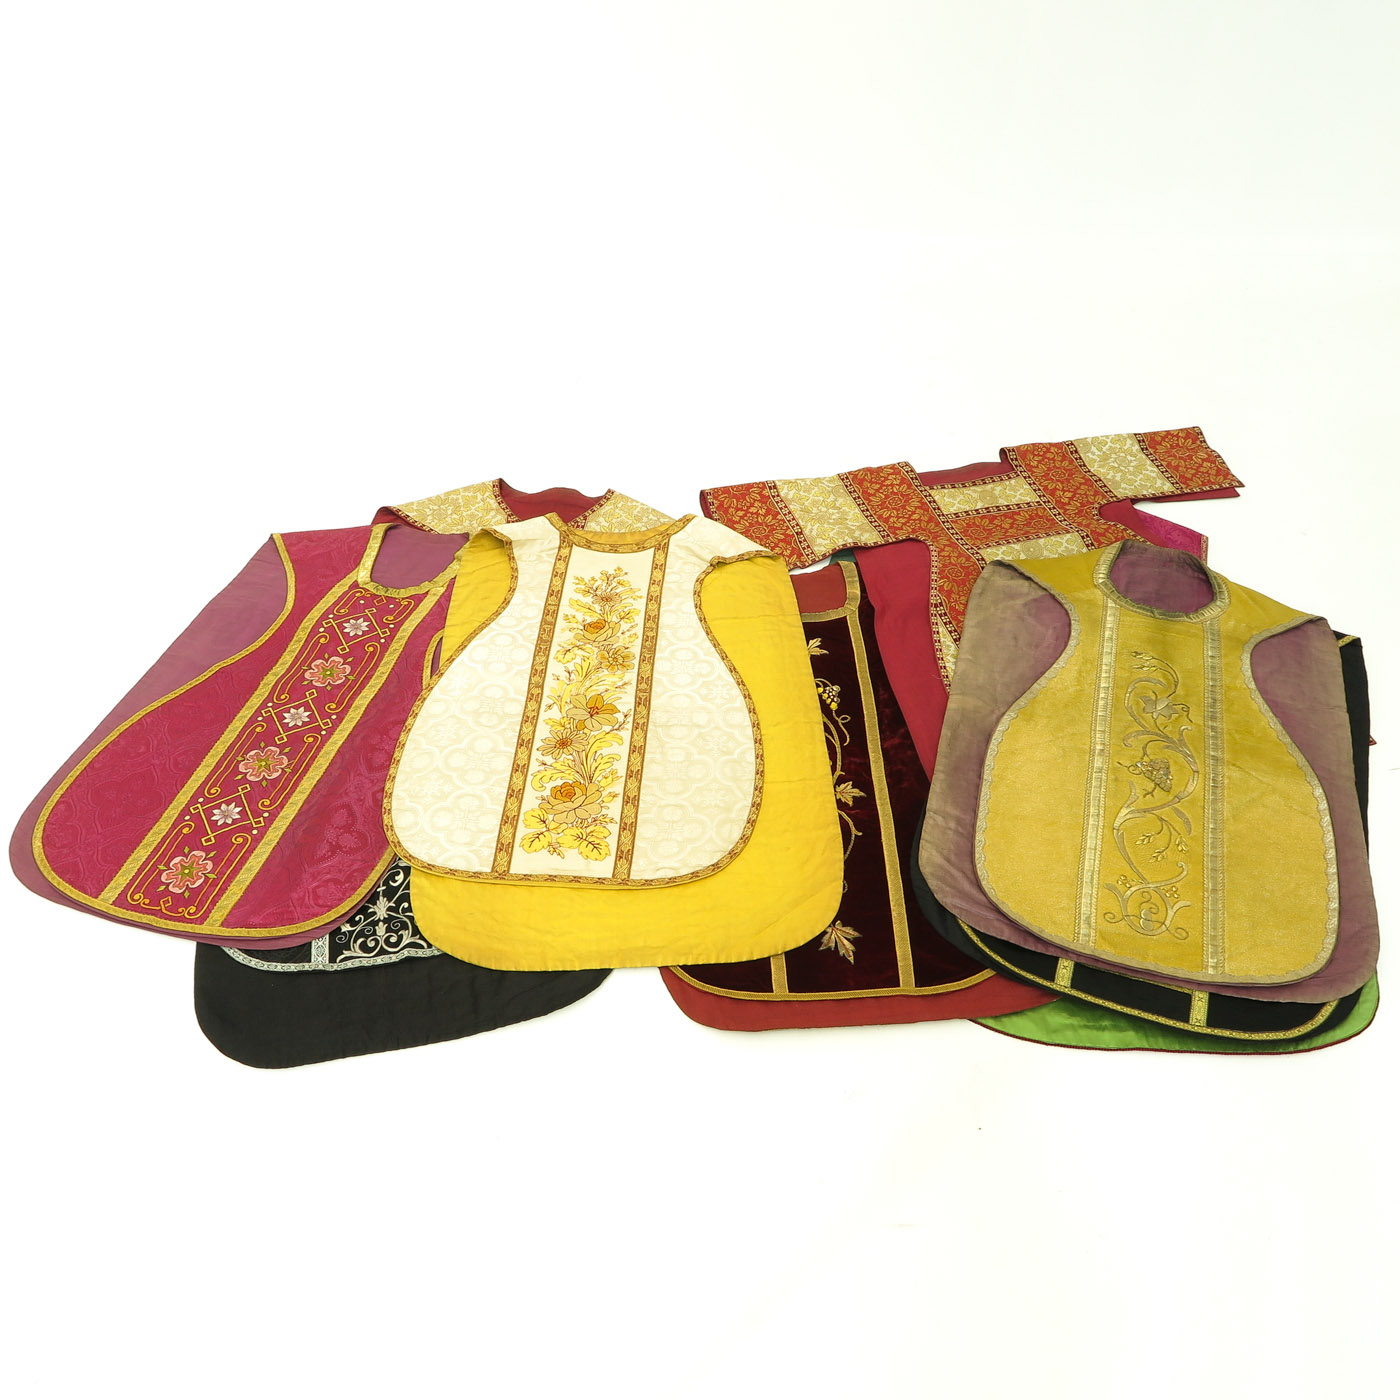 Lot 1445 - A Collection of Religious Vestments